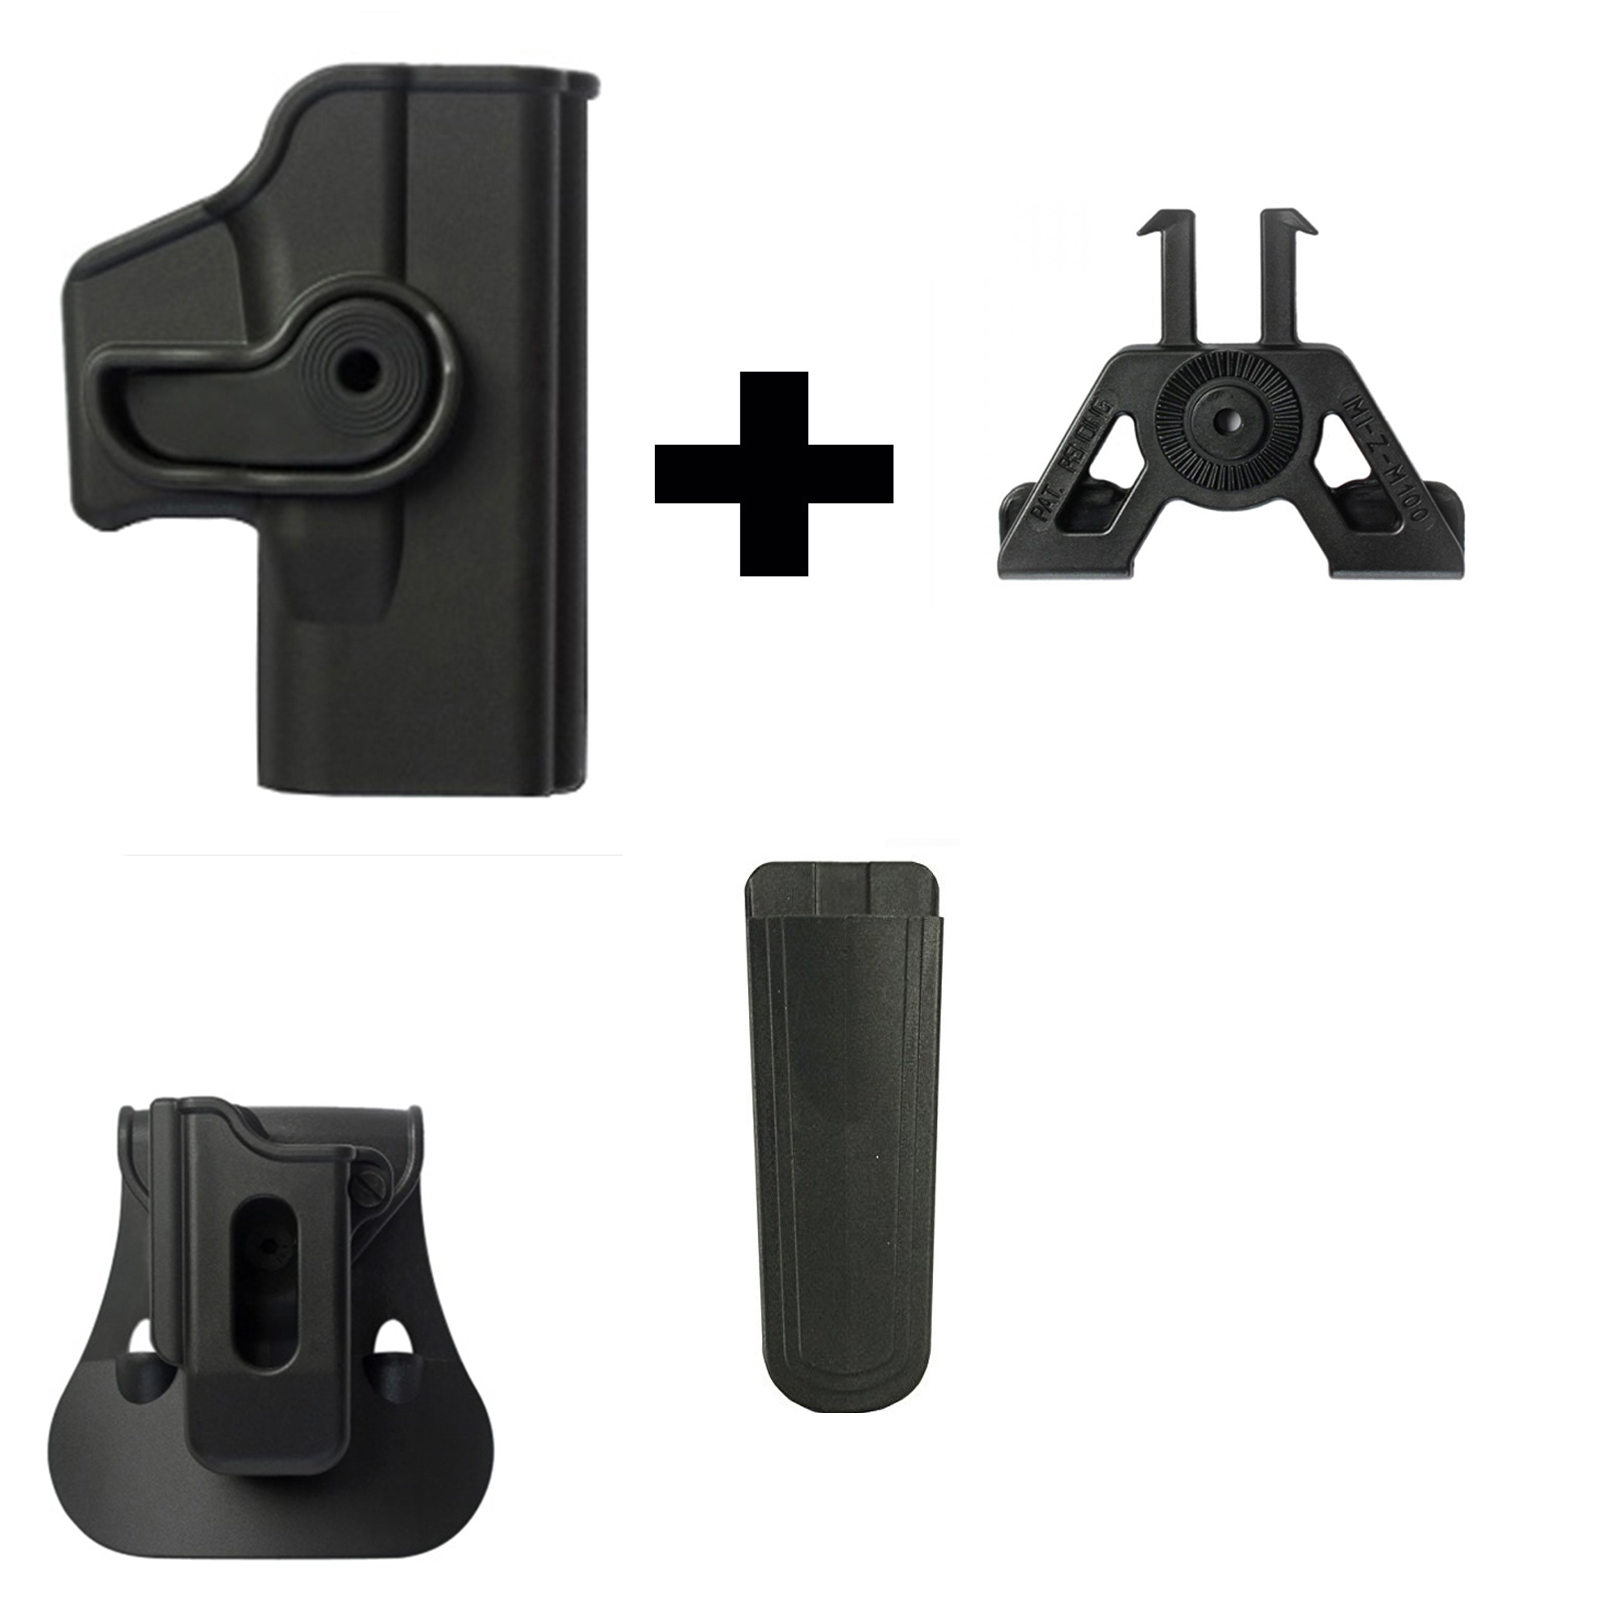 IMI Defense ZSP08 Single Mag Pouch & Paddle + Z1040 360� Rotate Holster Glock 23 26 27 28 33 36 Gen 4, Black + ZM100... by